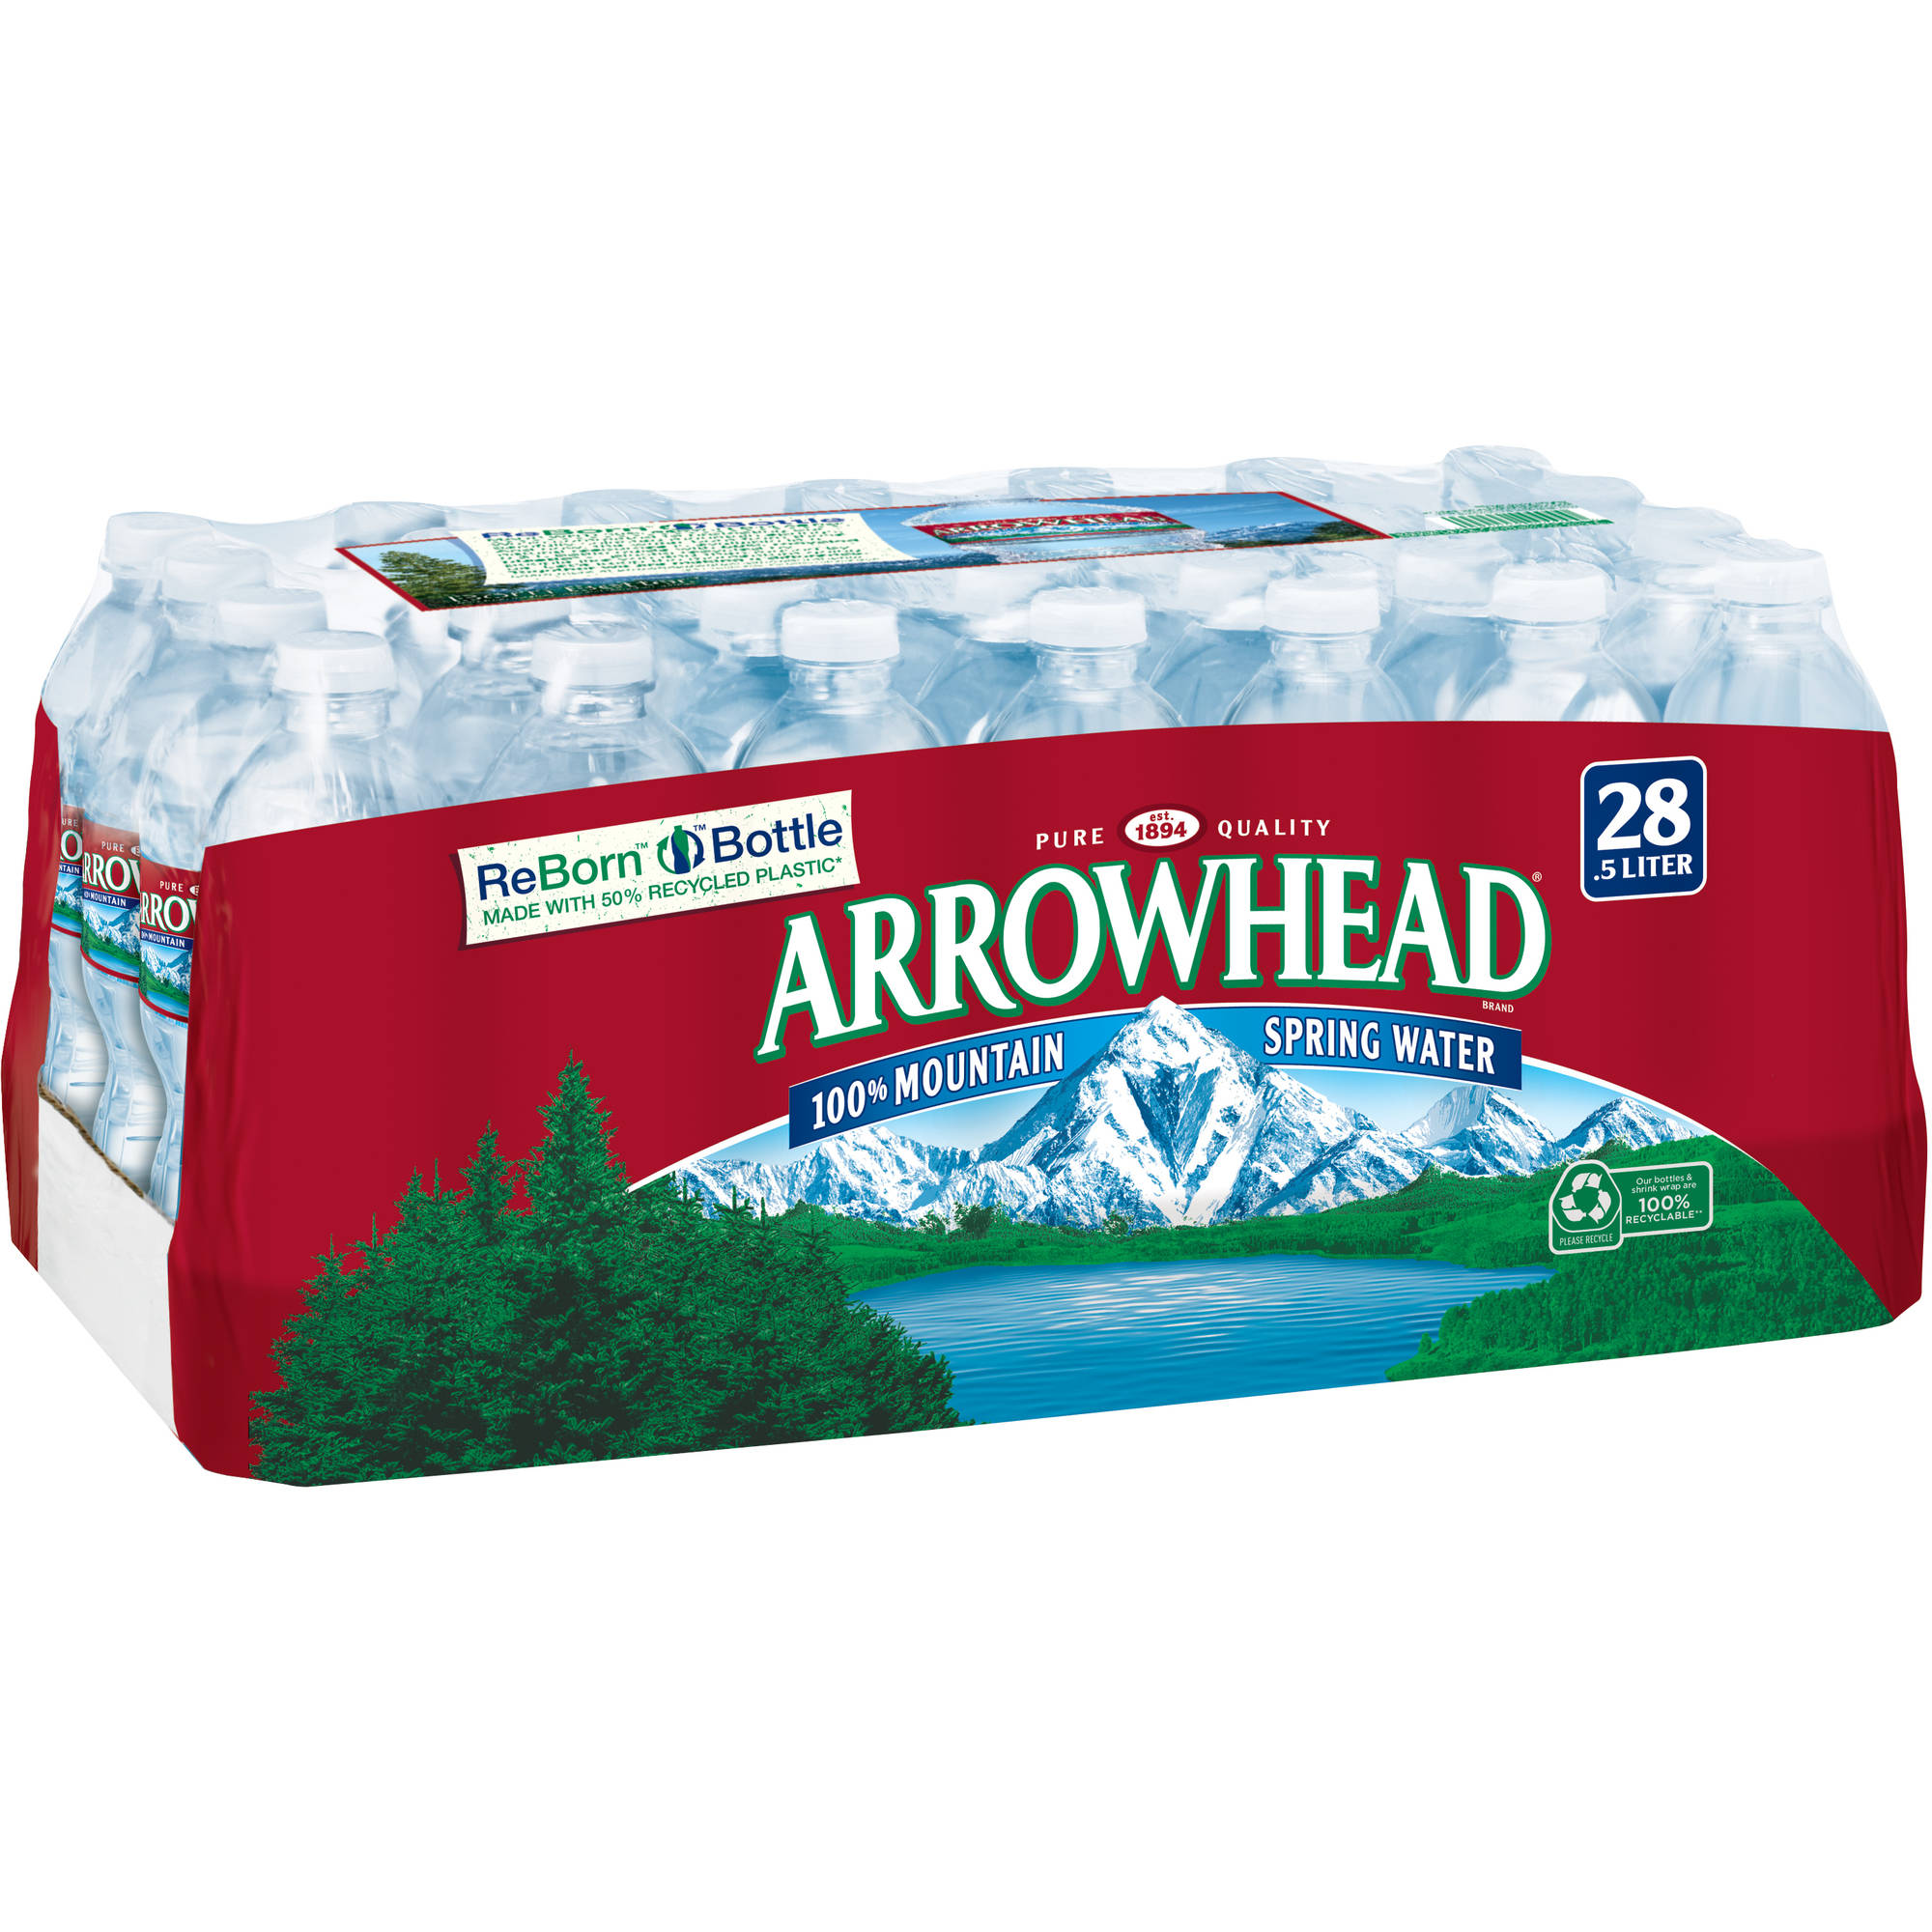 Arrowhead 100% Mountain Spring Water, 16.9 fl oz, 28 pack